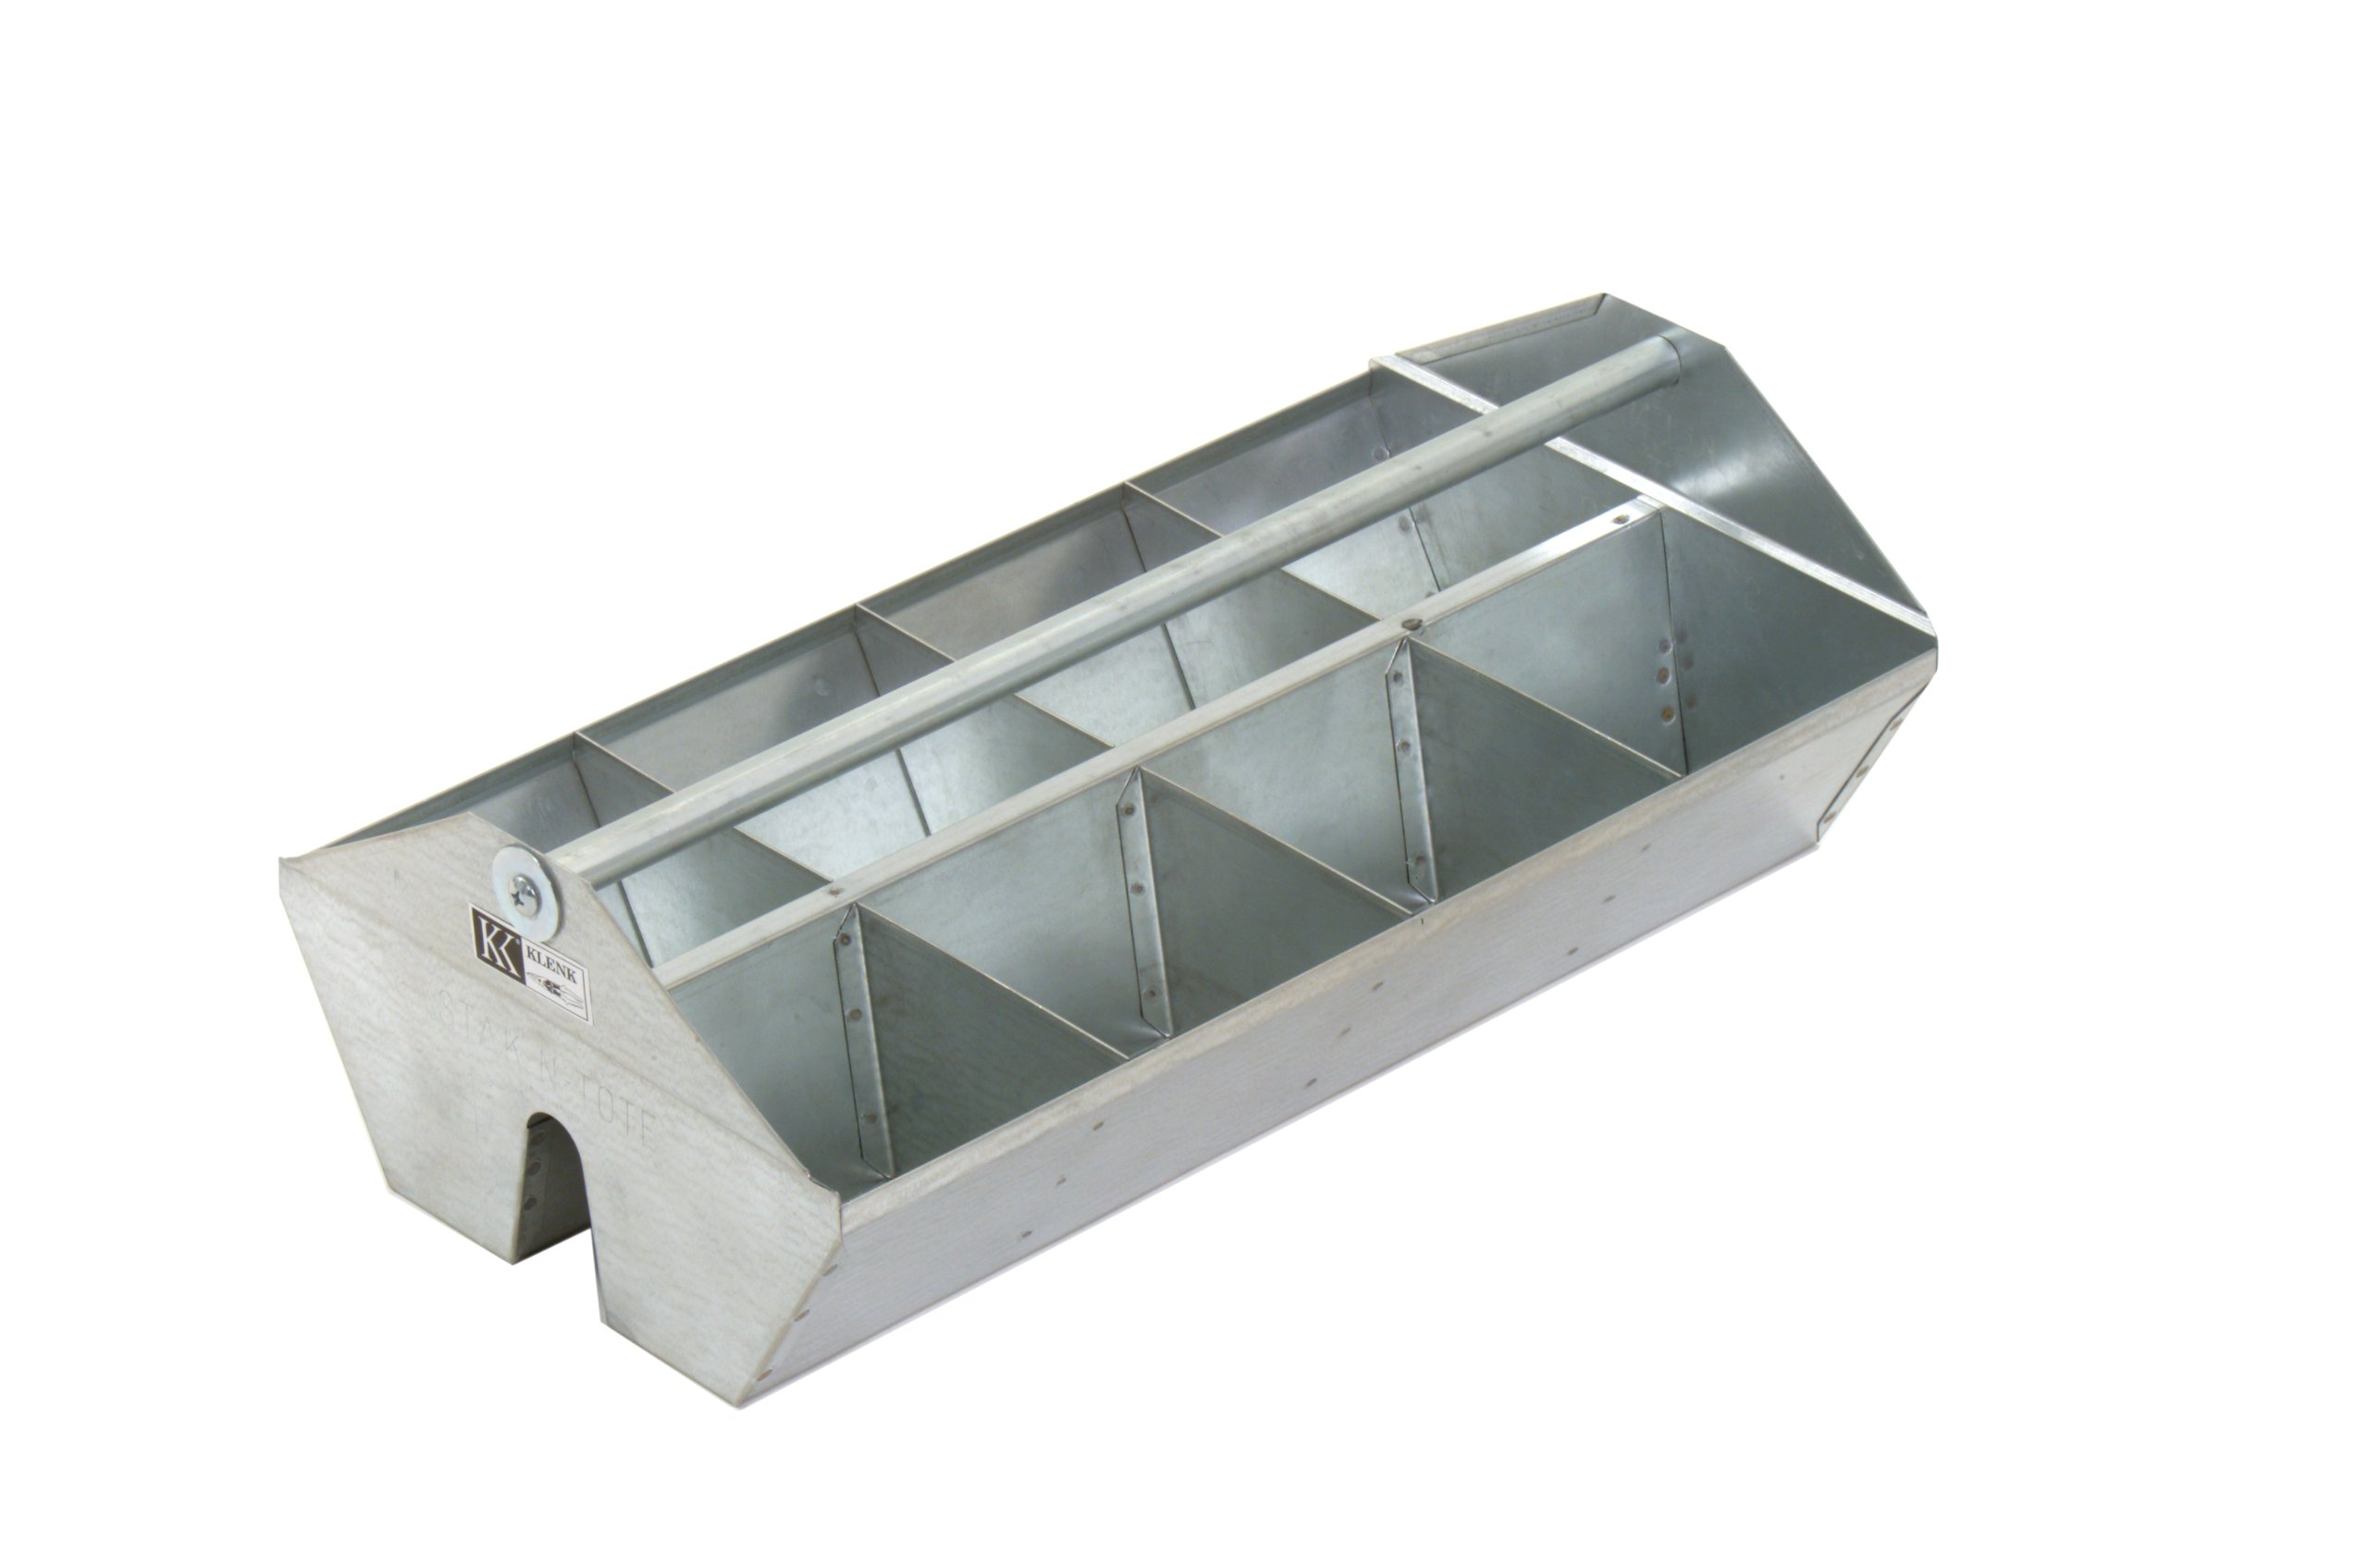 MB78010 Klenk Stak-N-Tote Fittings Tote Tray, 8 Compartment